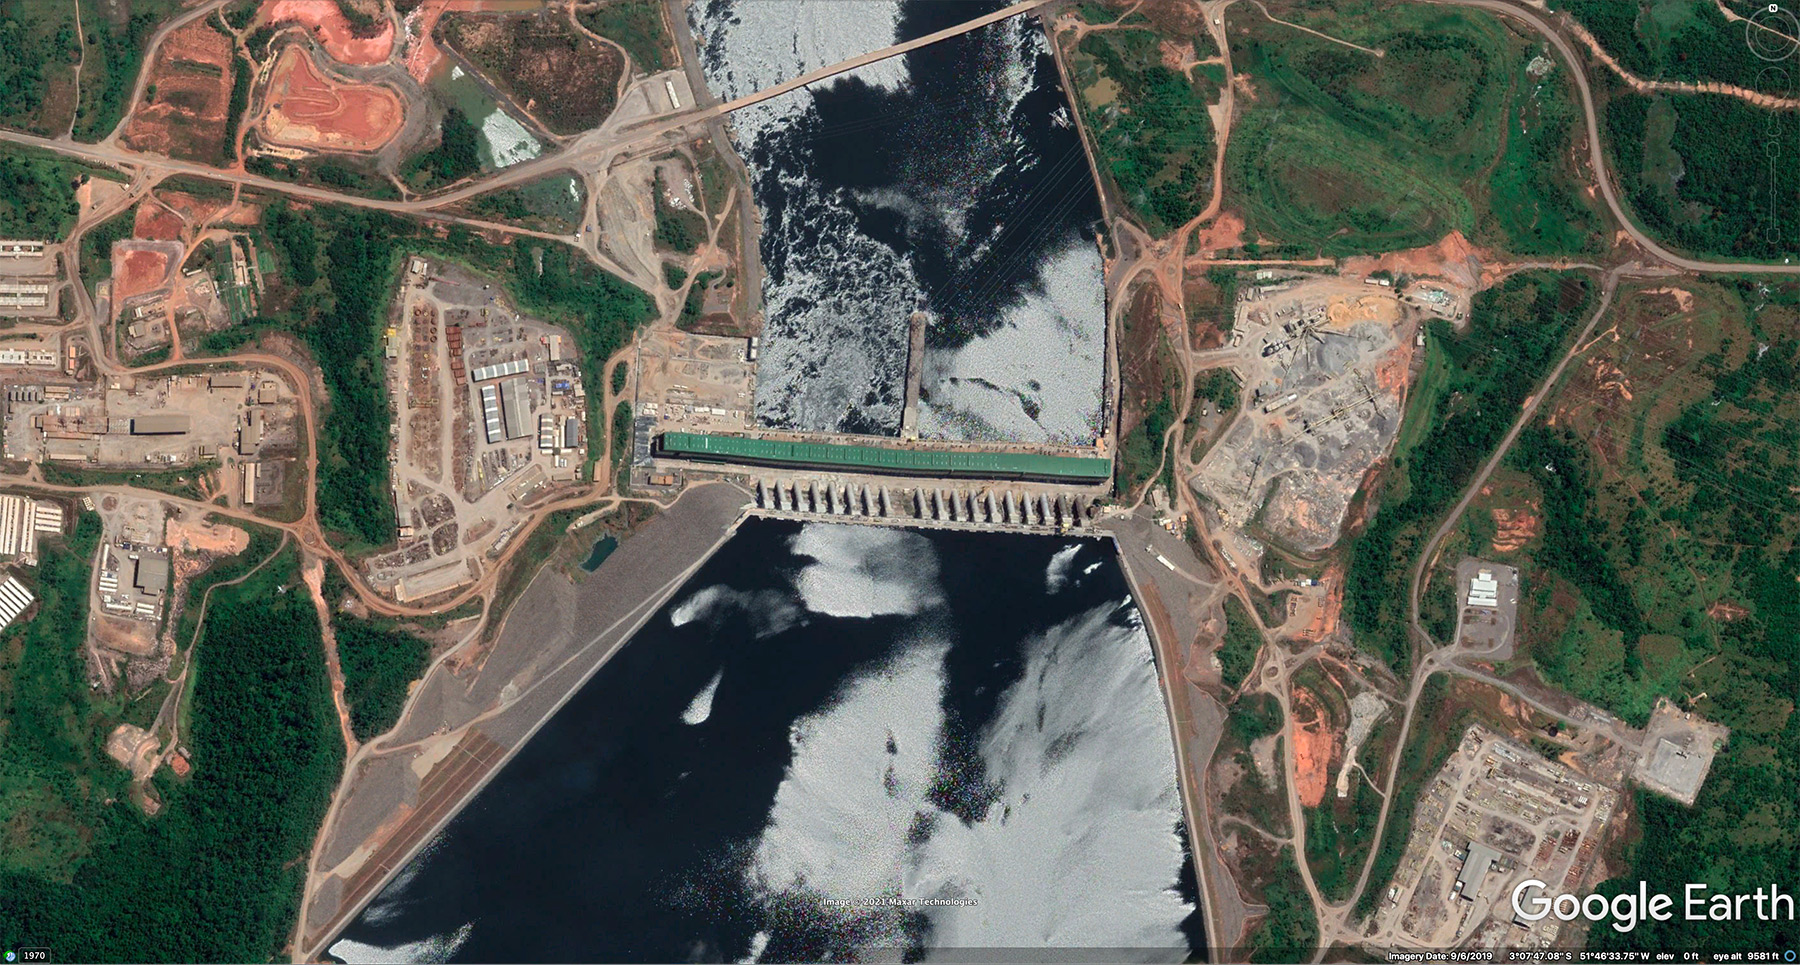 Google Earth image of the Belo Monte dam in 2019.